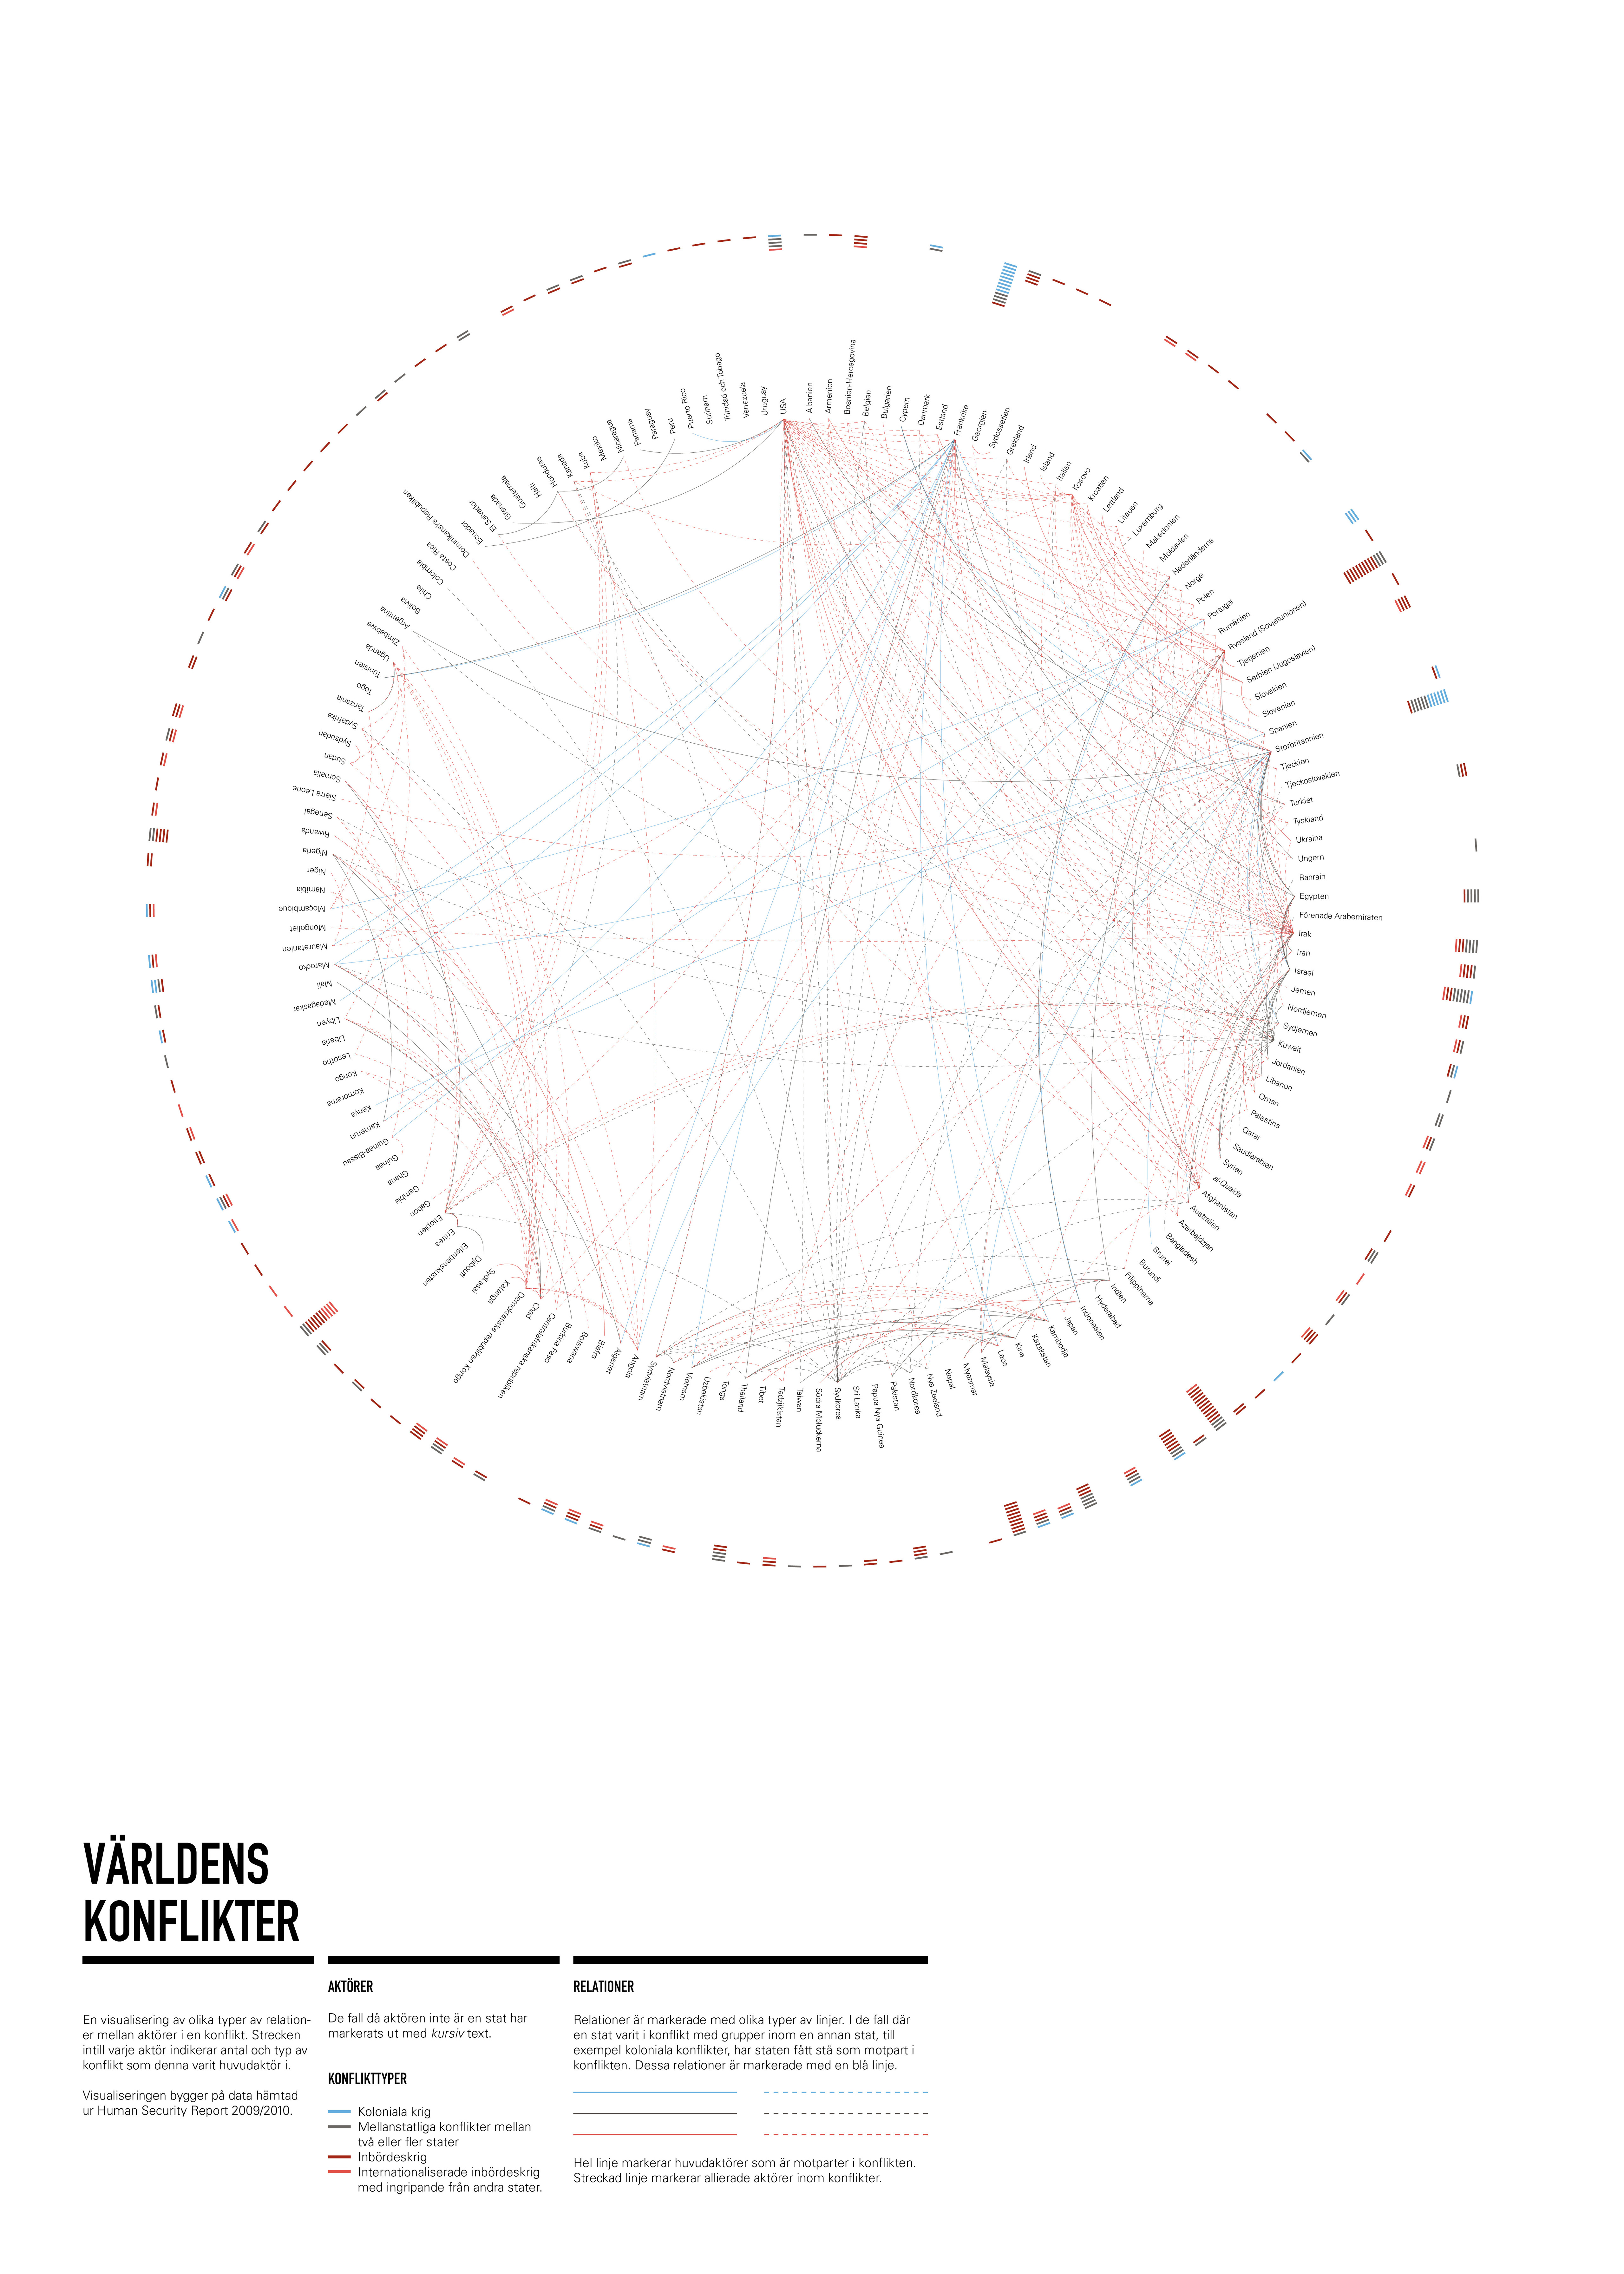 Visualizing Conflicts — Information is Beautiful Awards